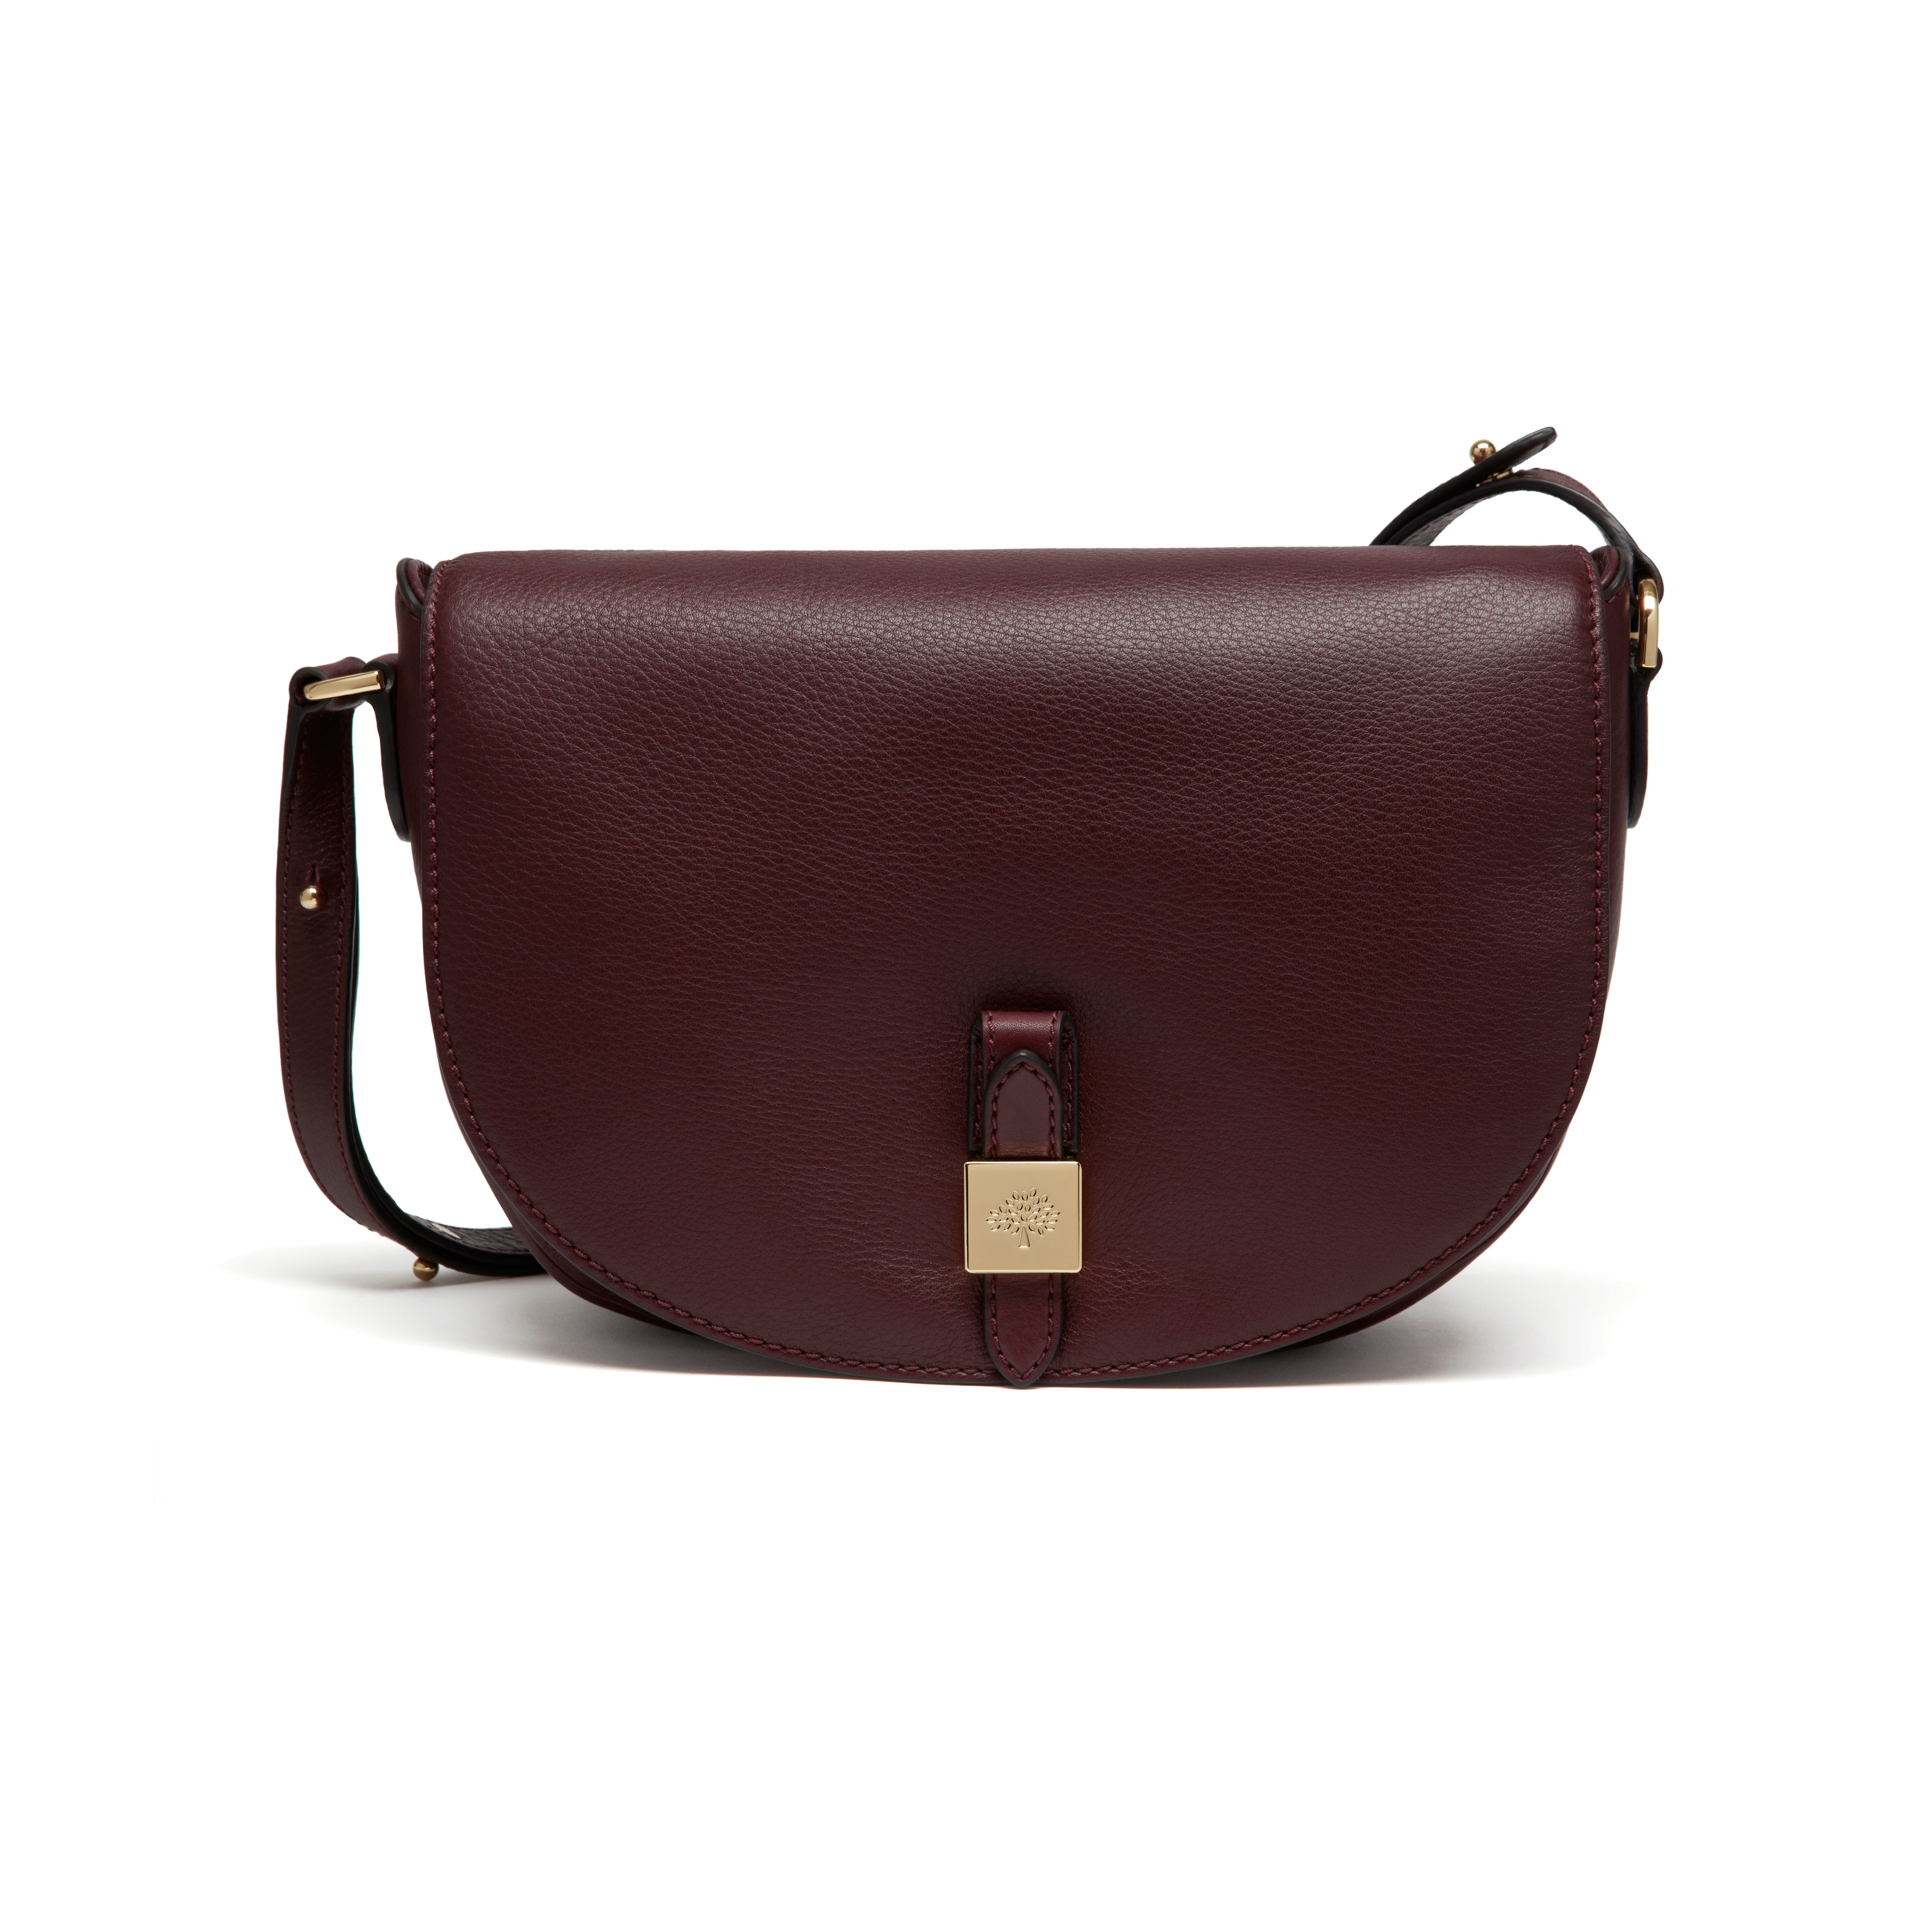 ... shopping mulberry tessie satchel bag in brown lyst d373c 2a53c ... 6465e9c197bf8